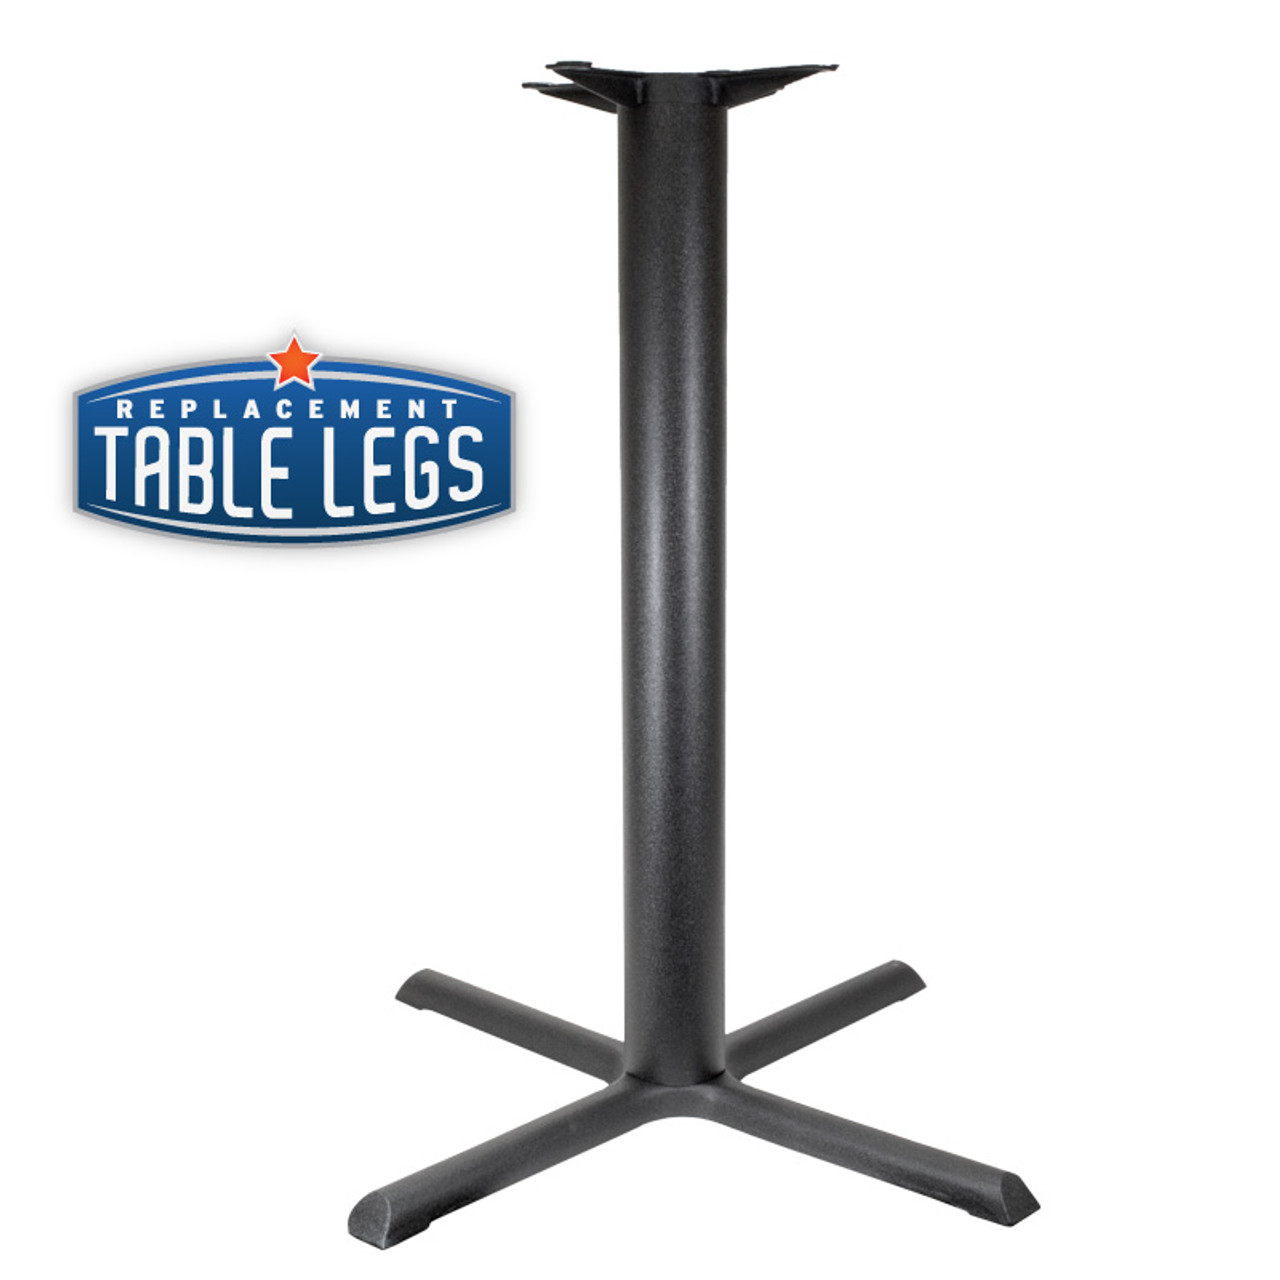 "CAST IRON TABLE BASE, X Style 22""x22"", 40"" height, 3"" diameter steel column - replacementtablelegs.com"